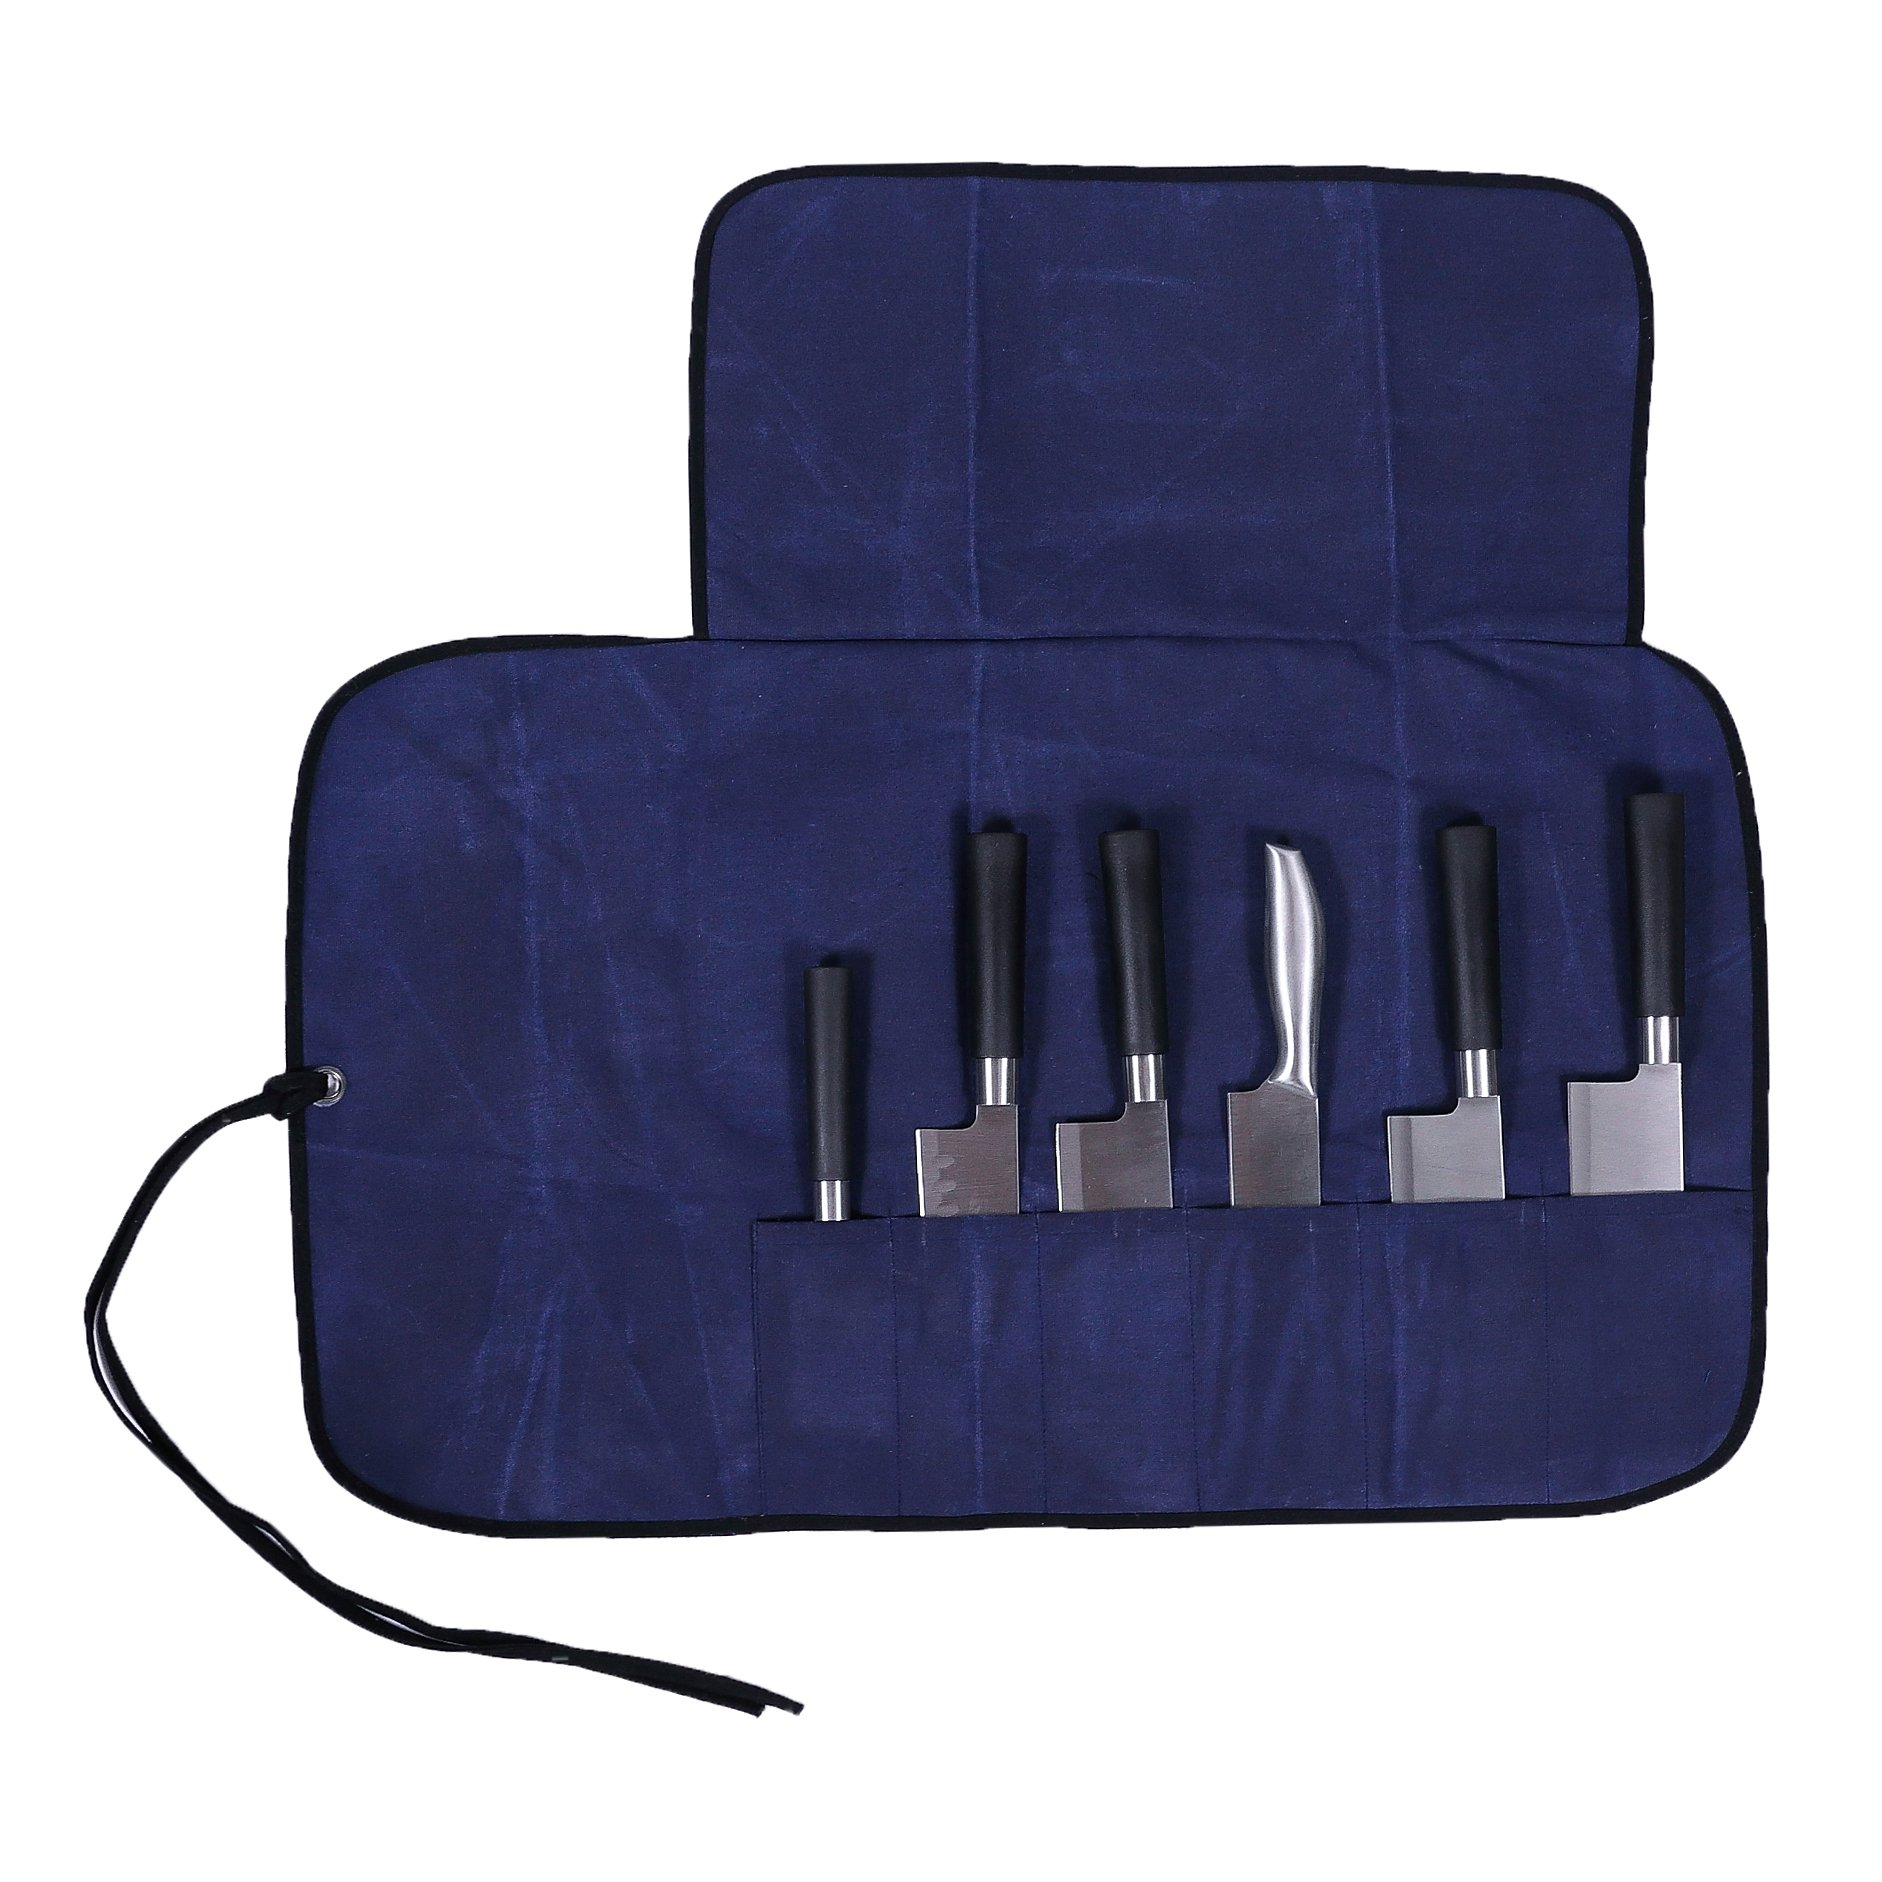 Handmade Waterproof Waxed Canvas Chef's Knife Roll Utensil Holder Storage Bag 6 Slot Multi Purpose Knife Roll Pouch with Cover Flap & Wrap String Best Gift For Him / Her HGJ03-M-US